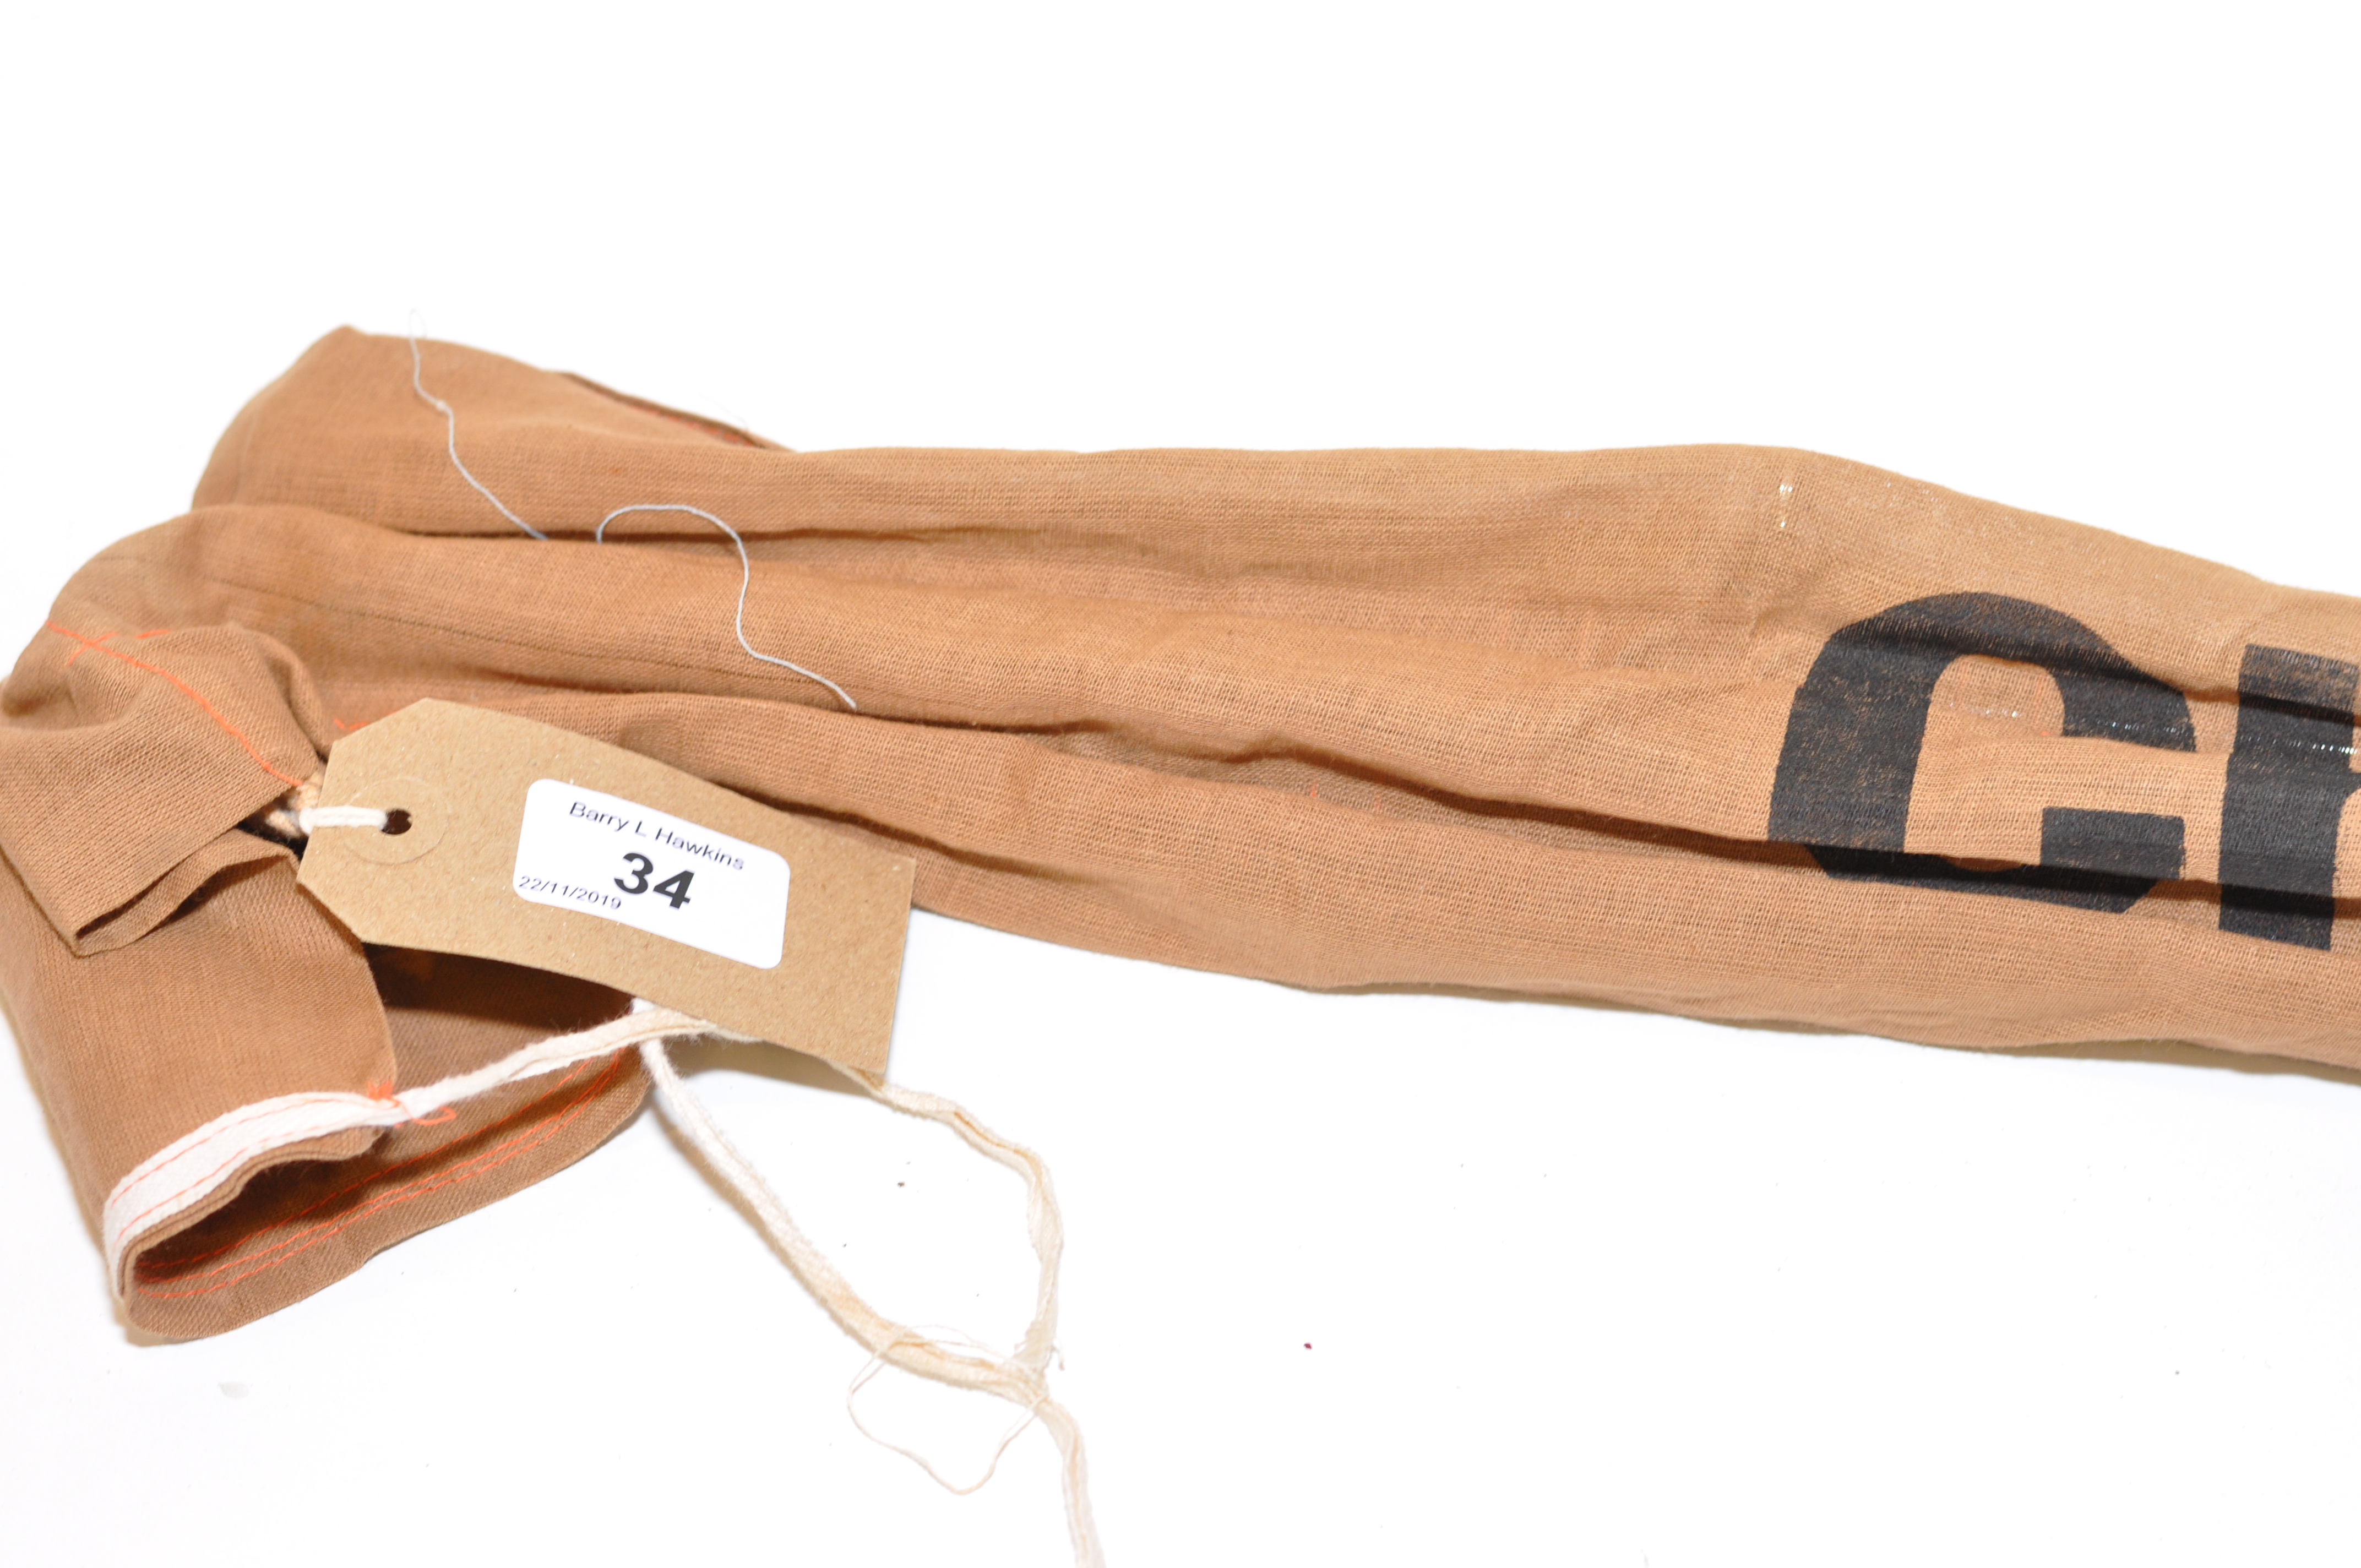 Lot 34 - SHAKESPEARE CHAMPION 1850-360 FISHING ROD AND BAG